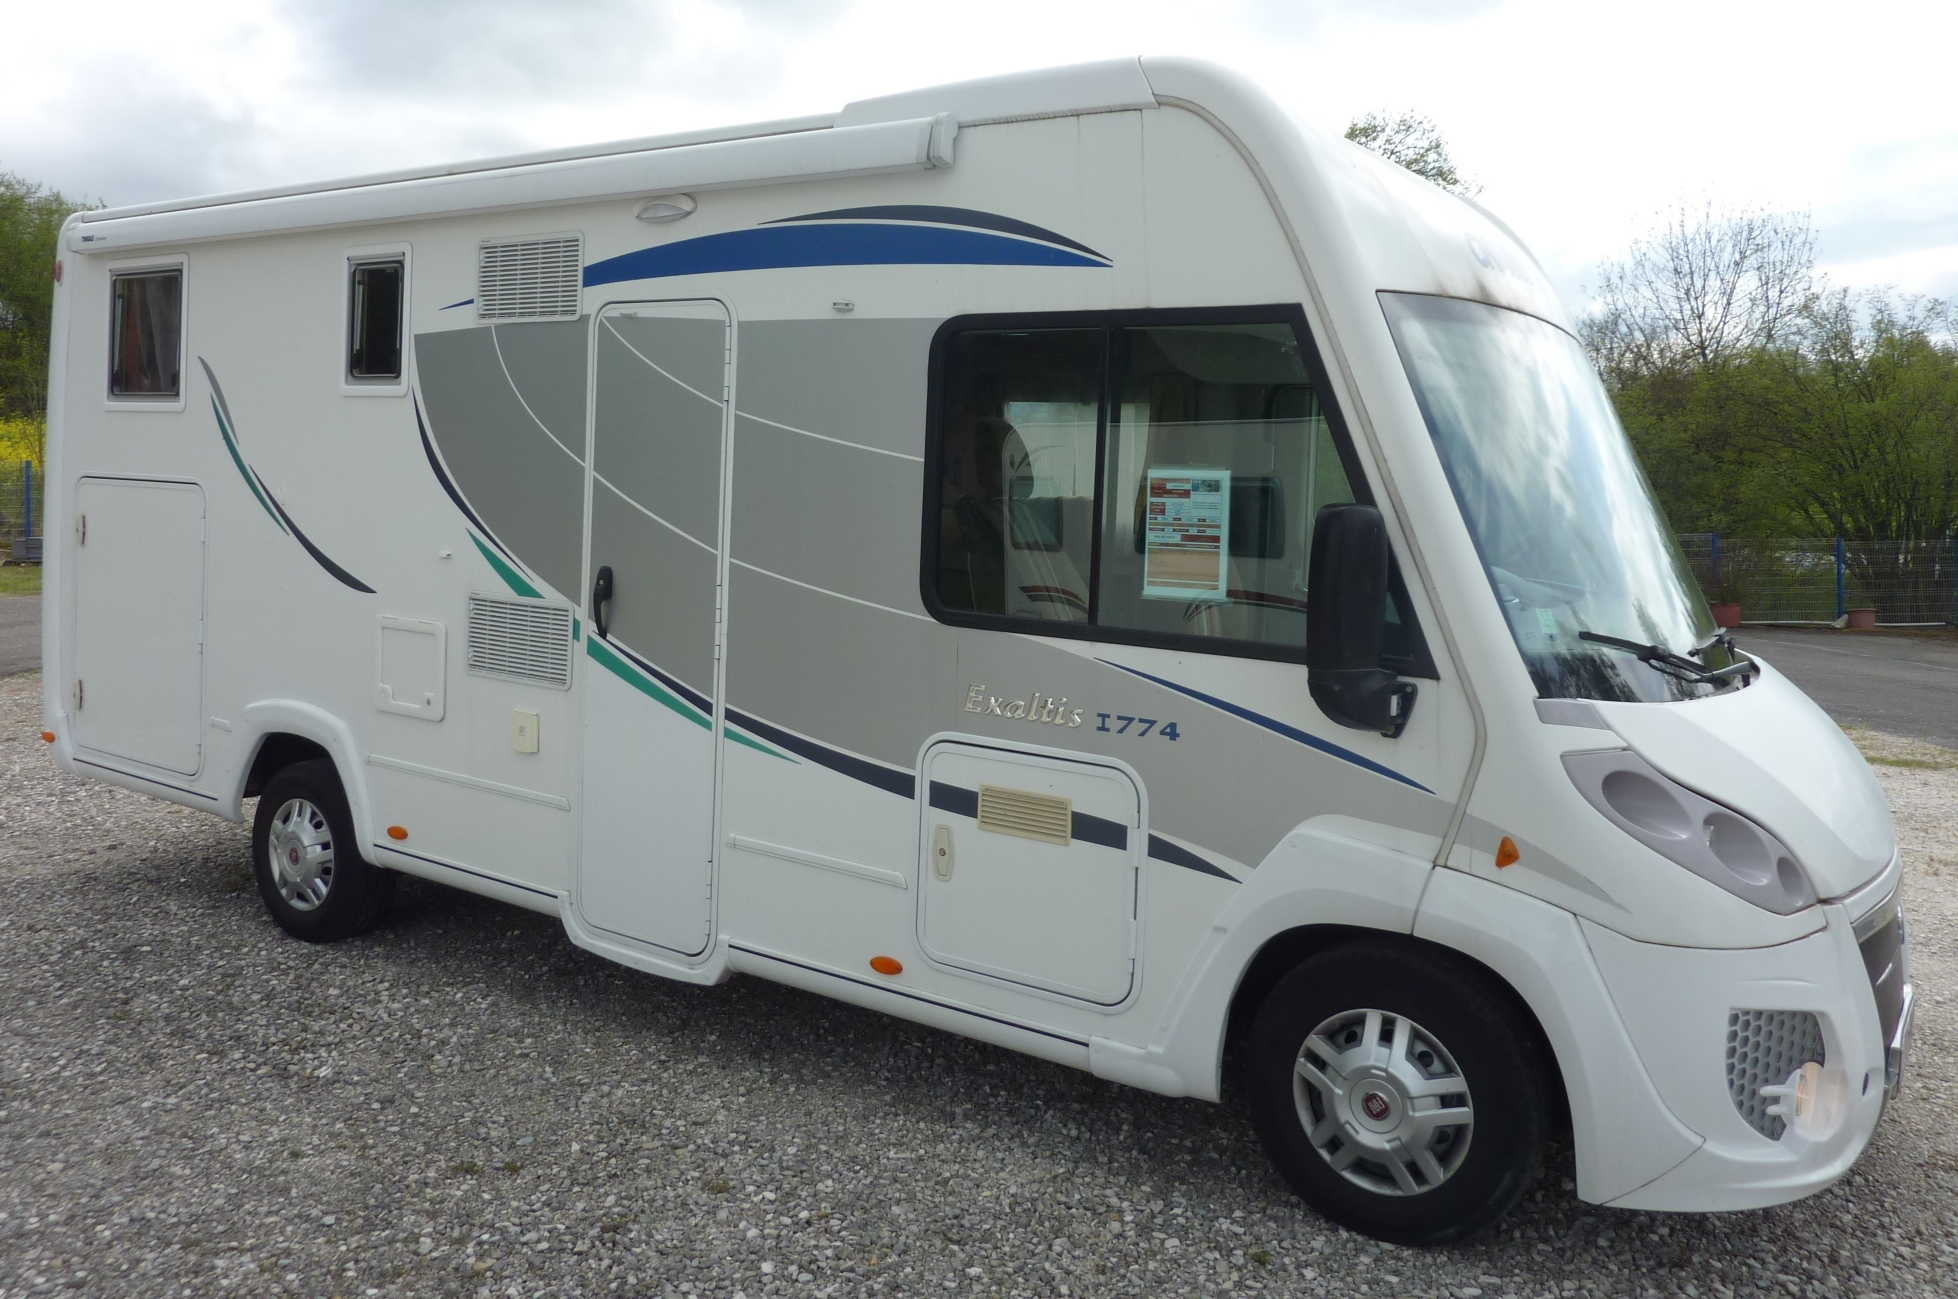 Annonce chausson exaltis 6010 camping car d occasion for Garage fiat le puy en velay